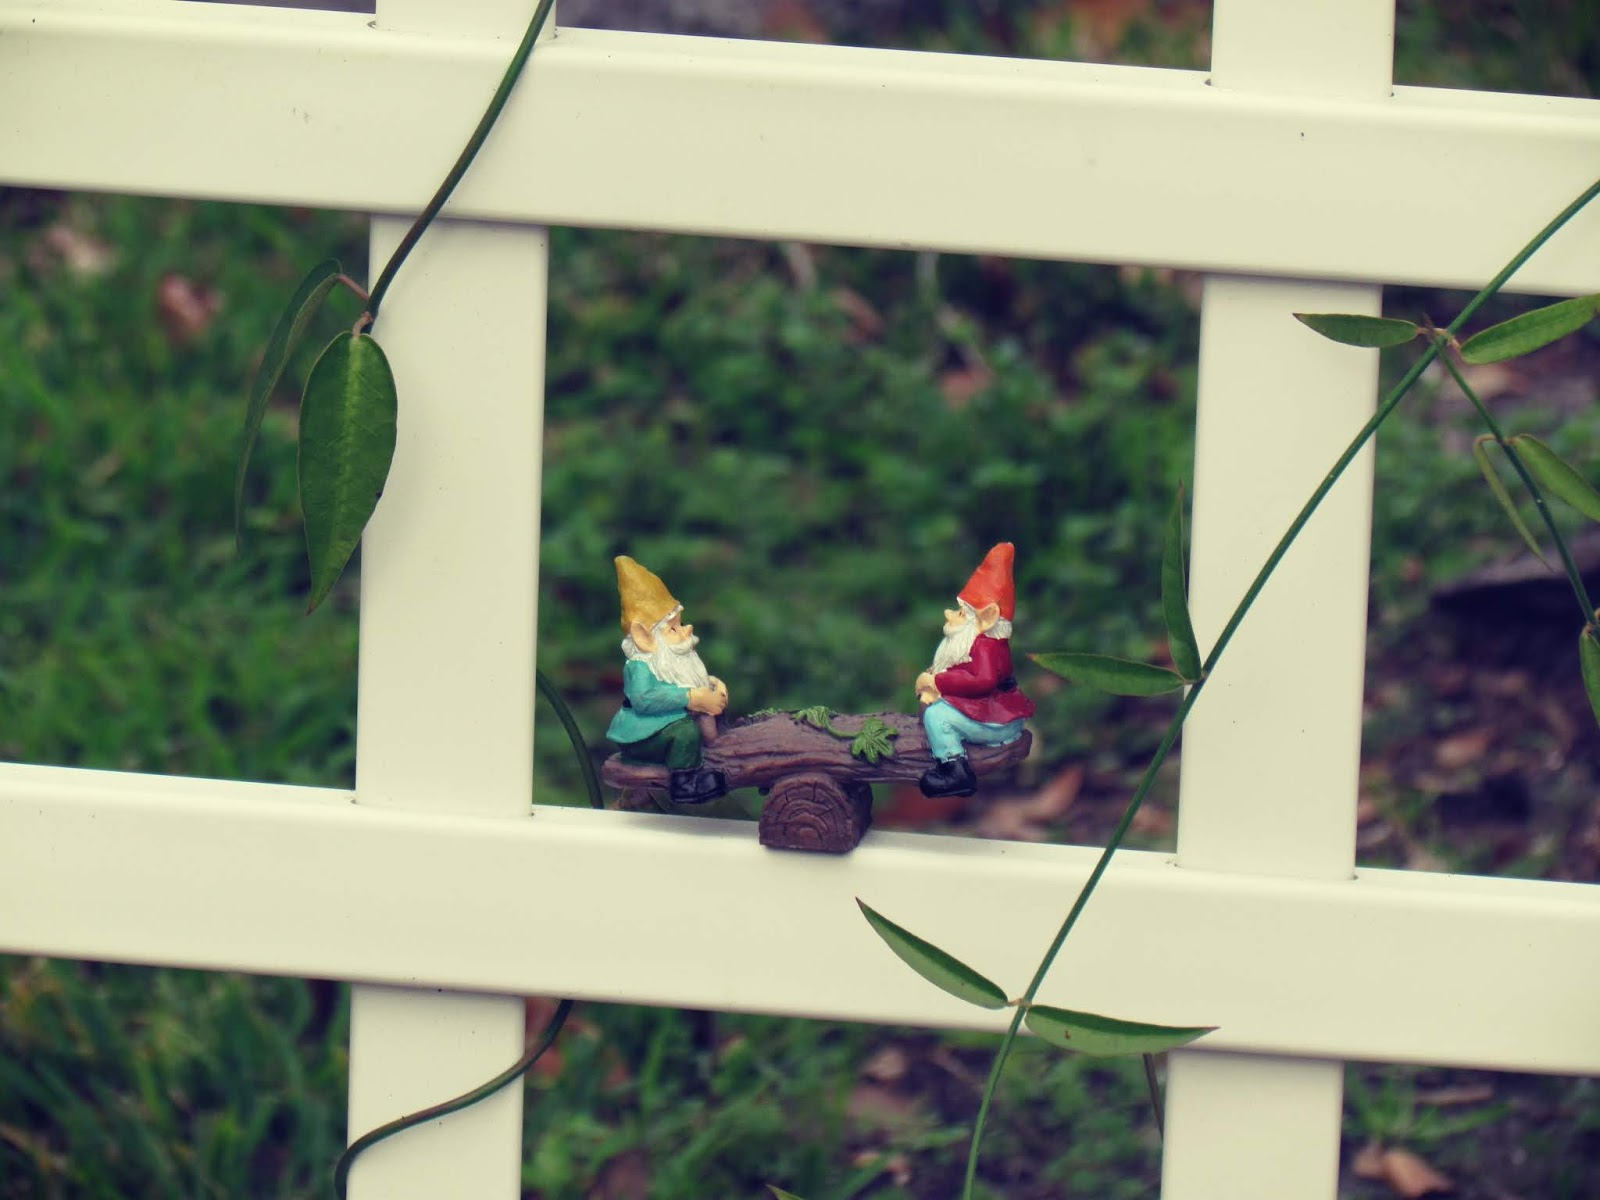 Lawn gnomes figurine on a white garden trellis in the park with a teeter totter and green vines